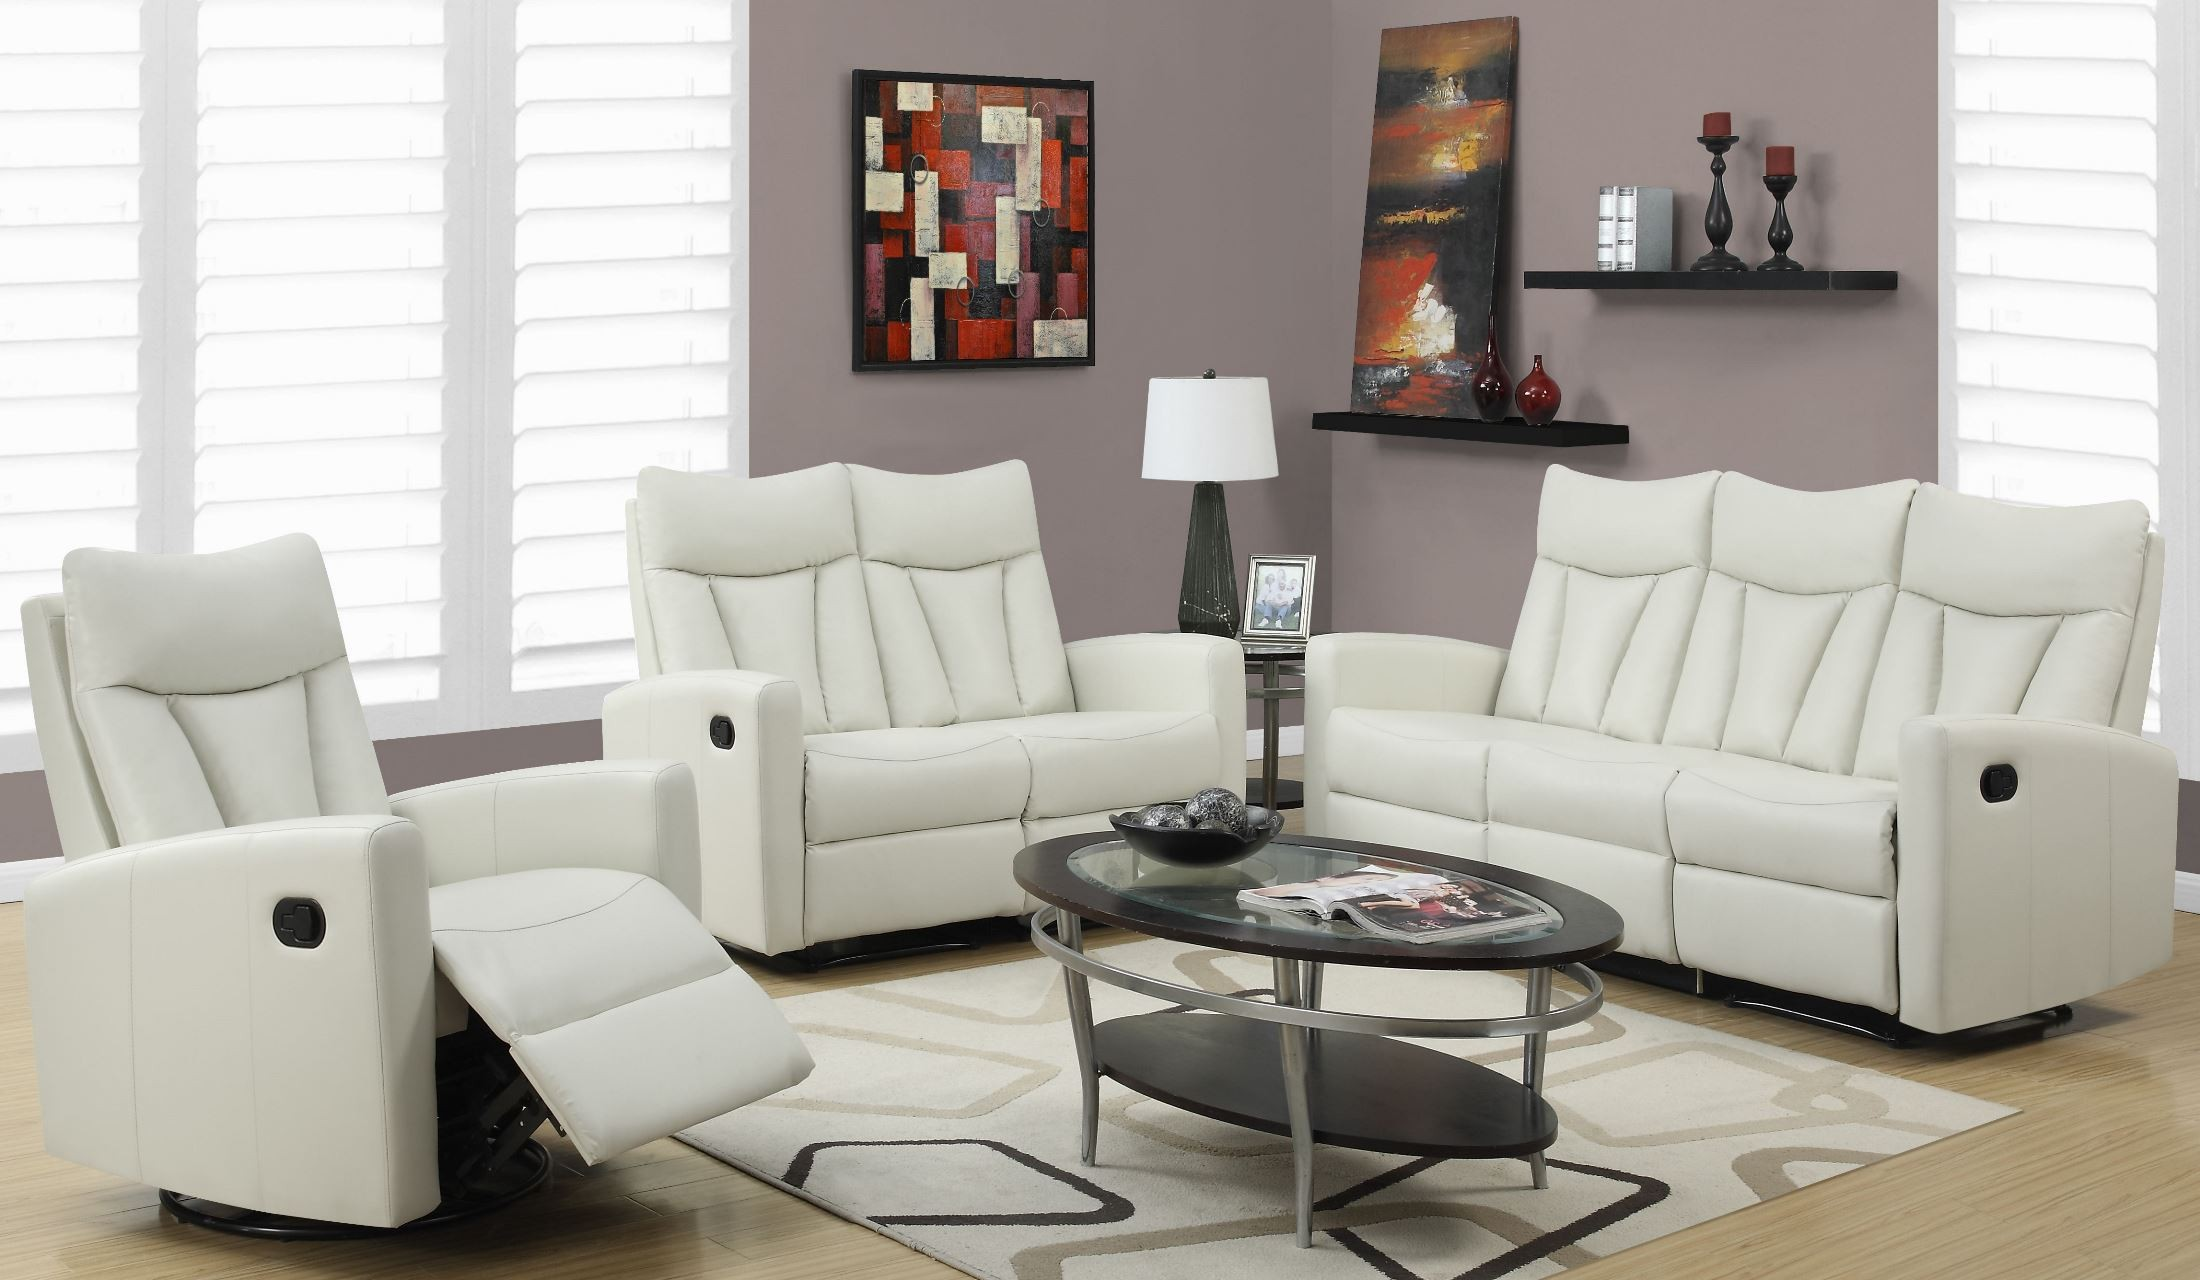 87iv 3 ivory bonded leather reclining living room set from for Front room furniture sets